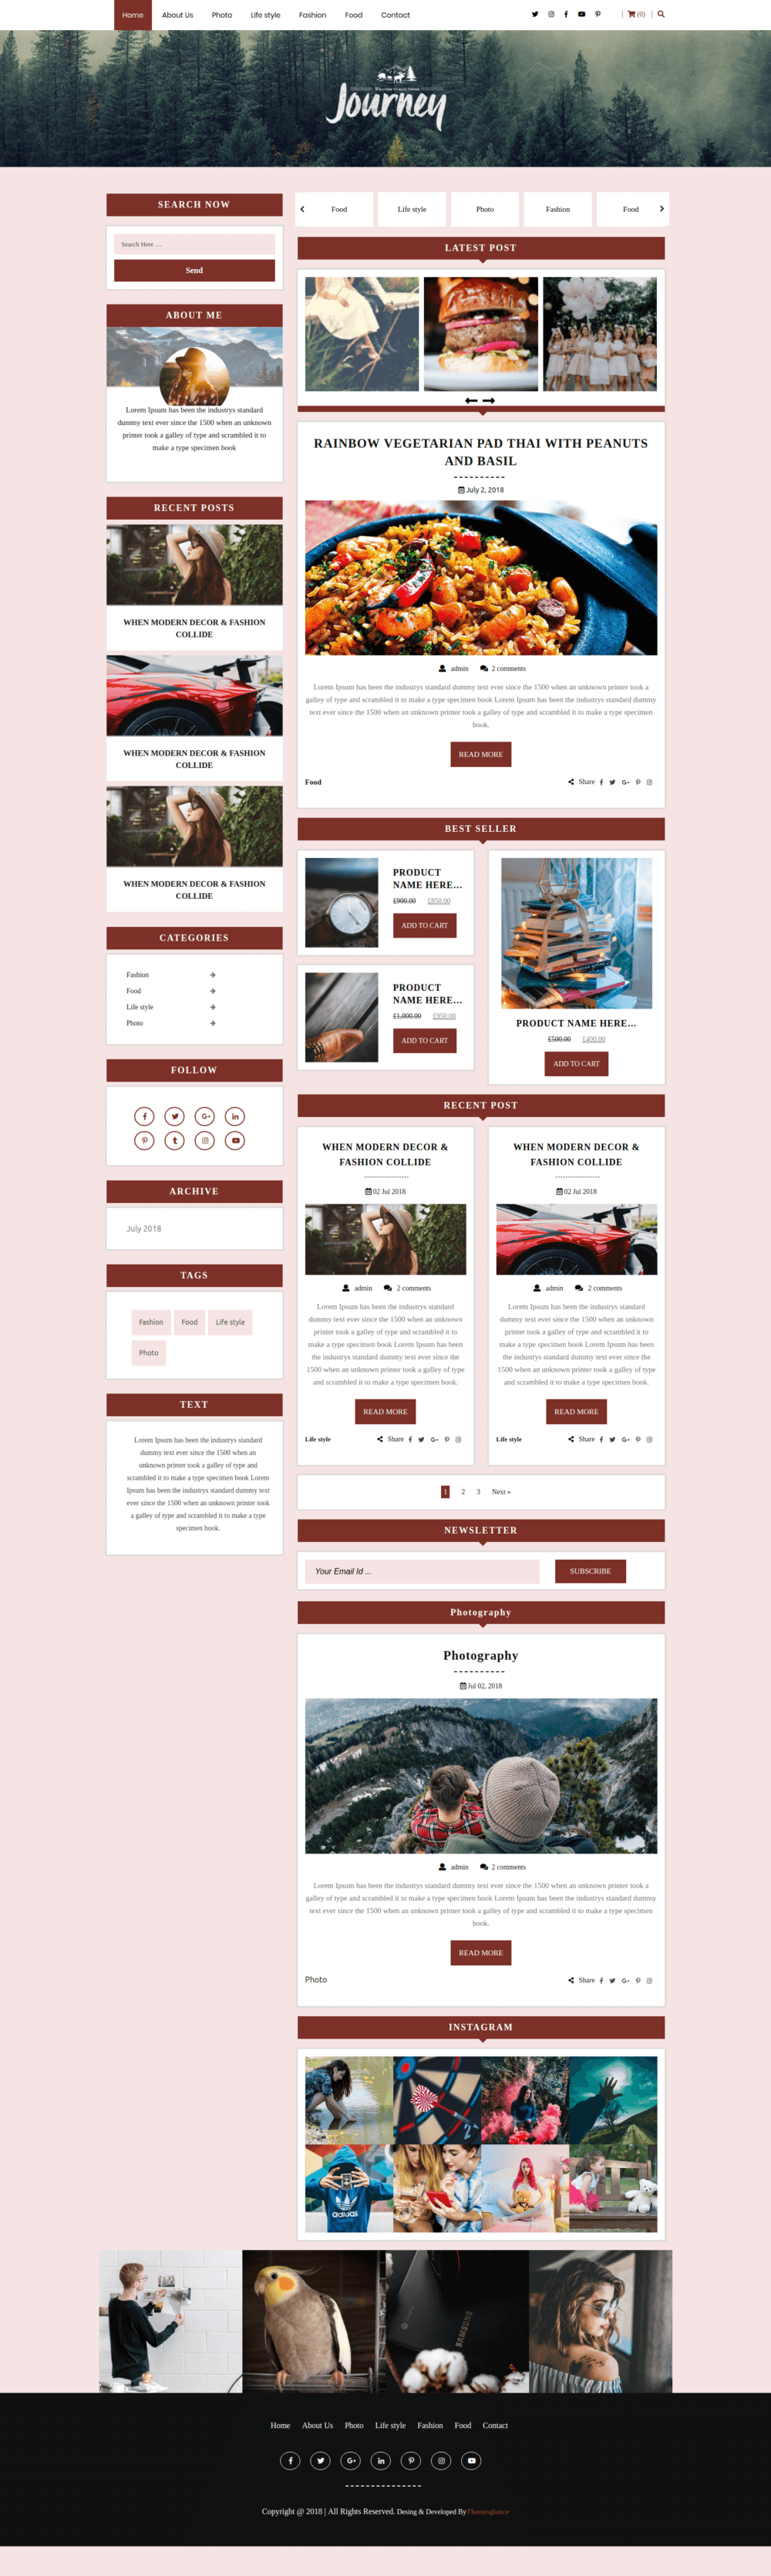 Premium Blog WordPress Theme